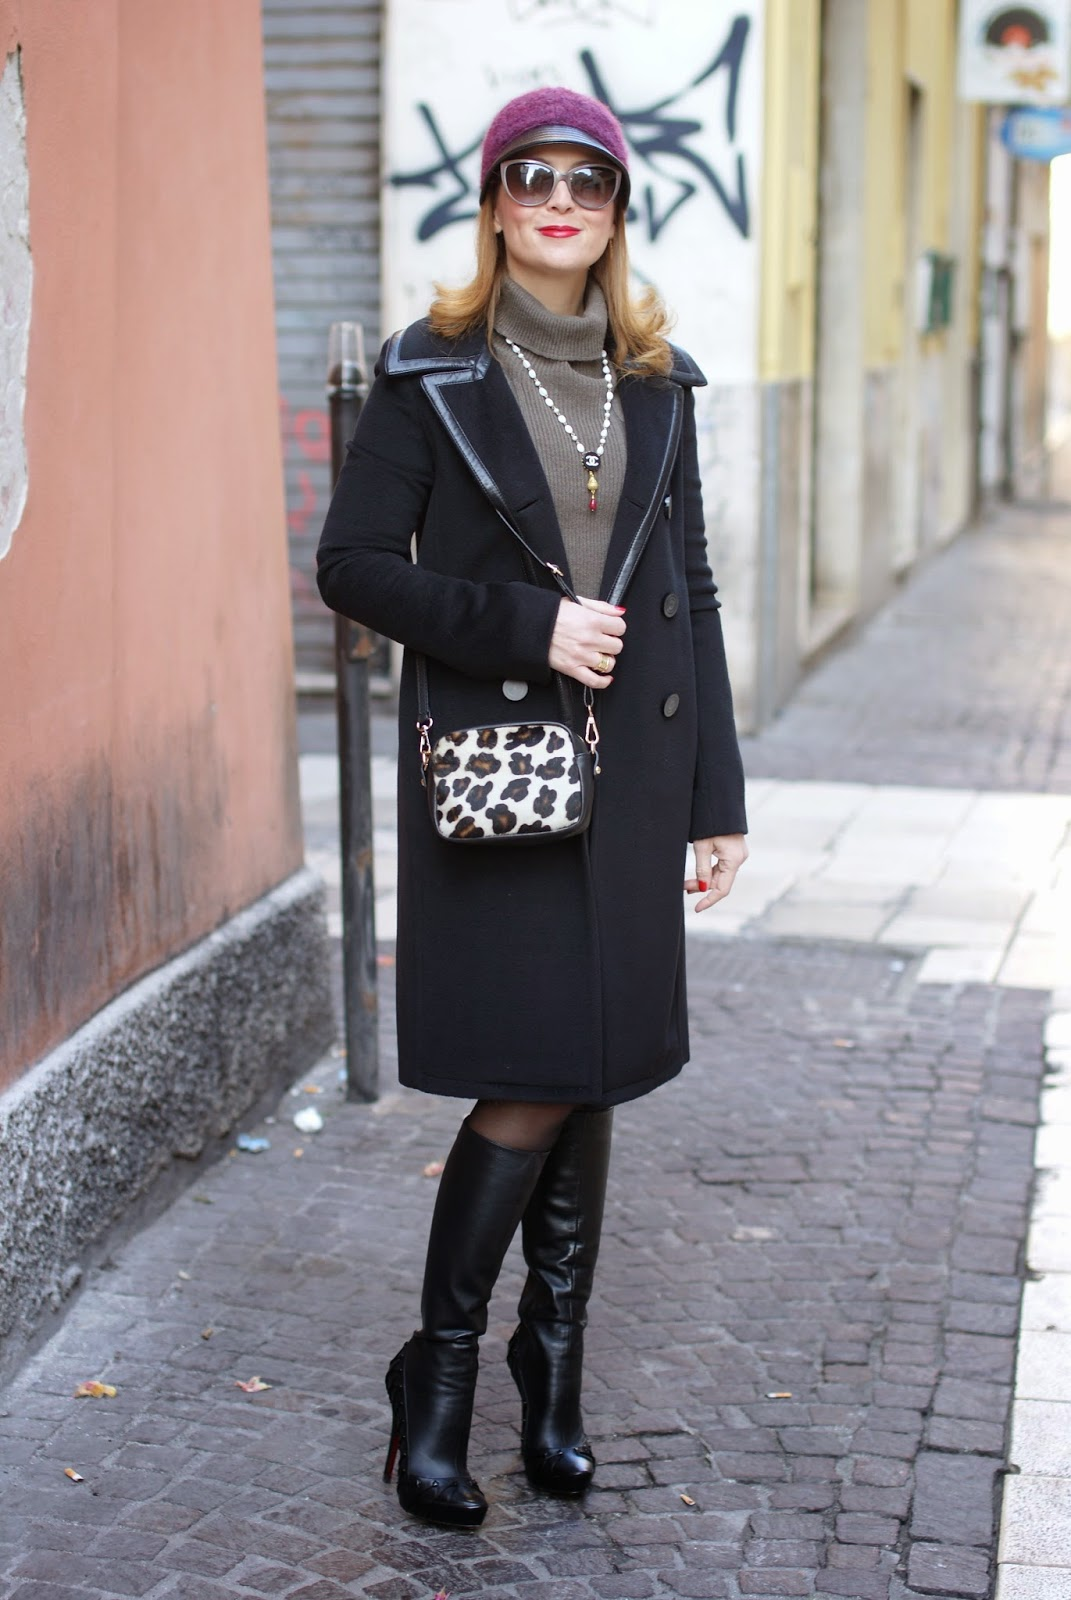 Balenciaga black coat, jockey hat, fetish boots, Sofia borse Candy pochette, Fashion and Cookies, fashion blogger